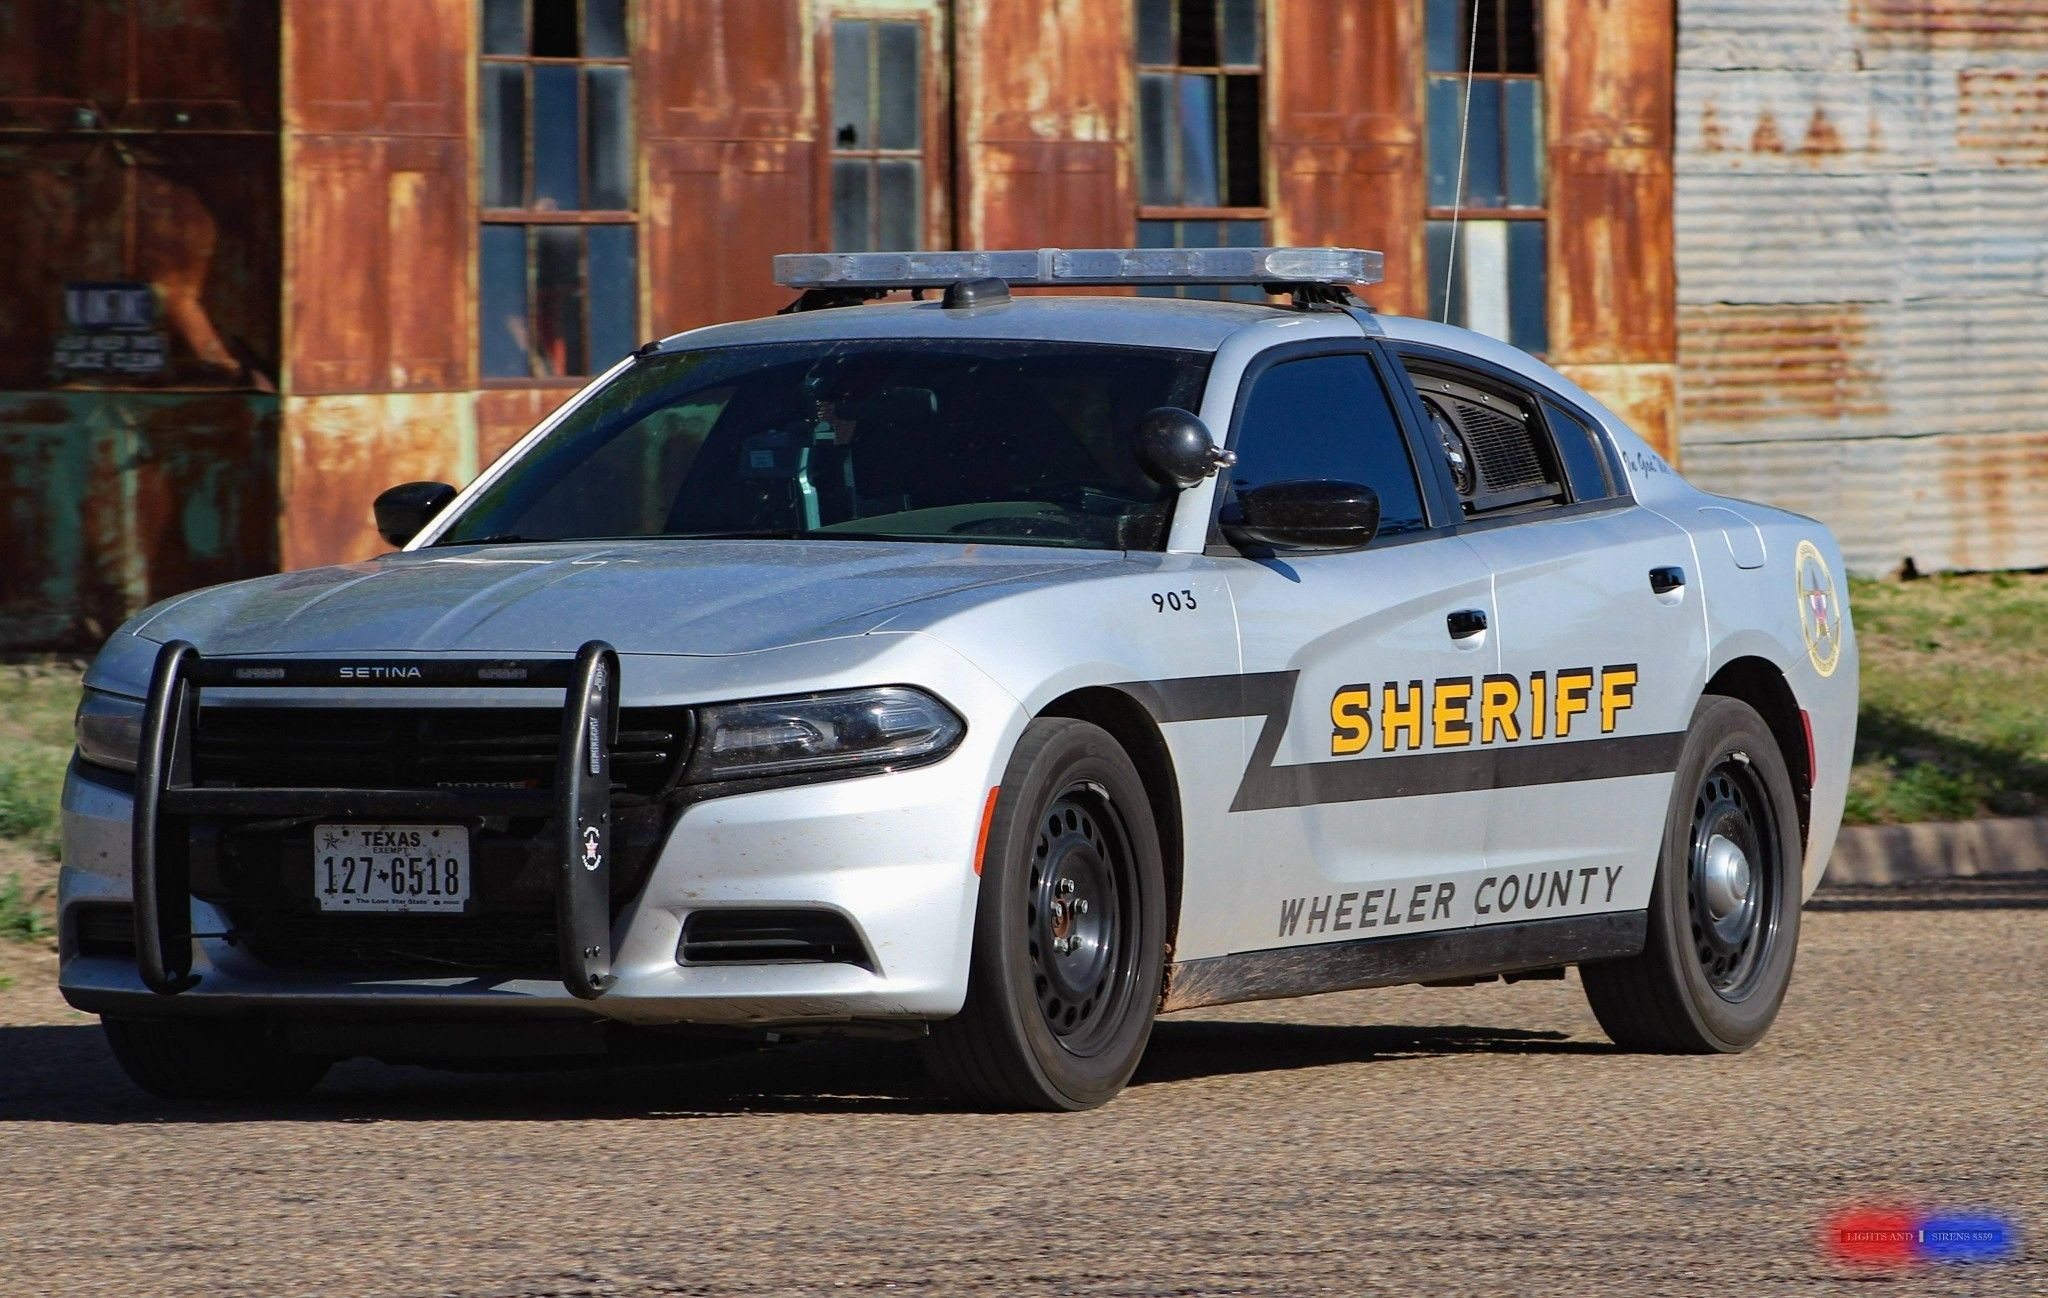 Wheeler County Sheriff S Office 2017 Dodge Charger